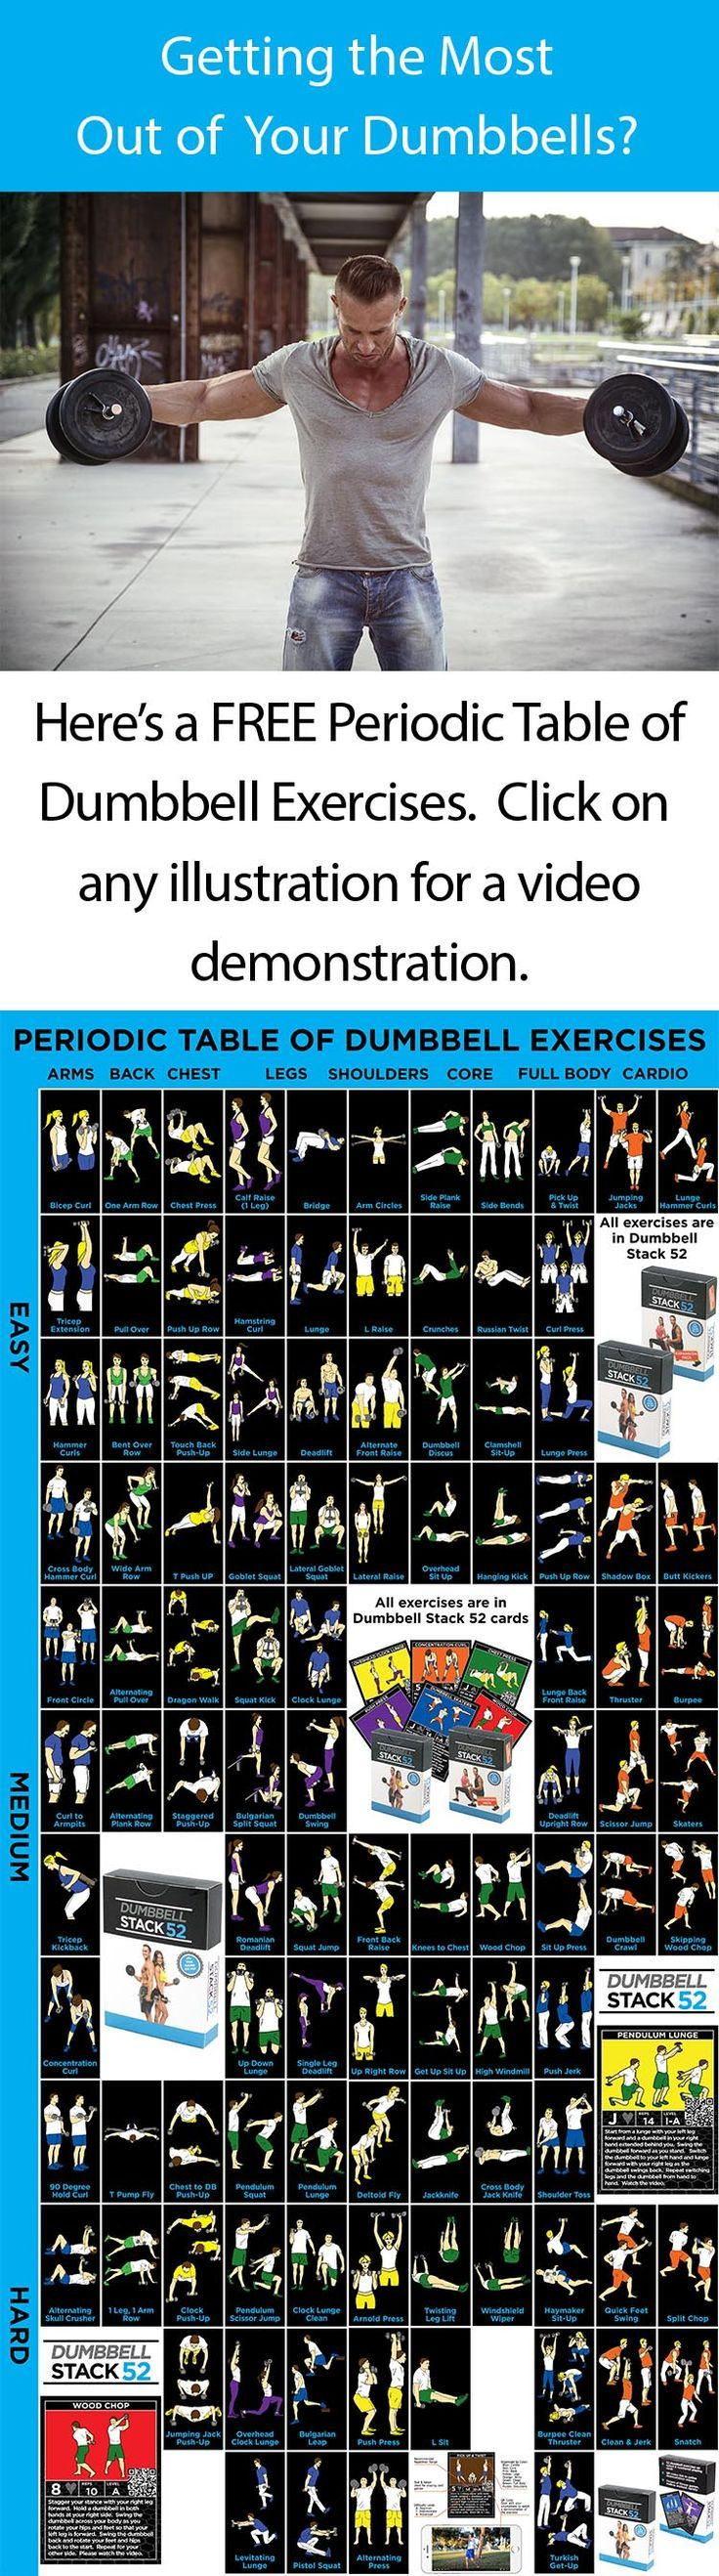 104 different dumbbell exercises organized by muscle group and difficulty.  Click on any illustration for a video demonstration of the exercise. http://musclepetrol.com/